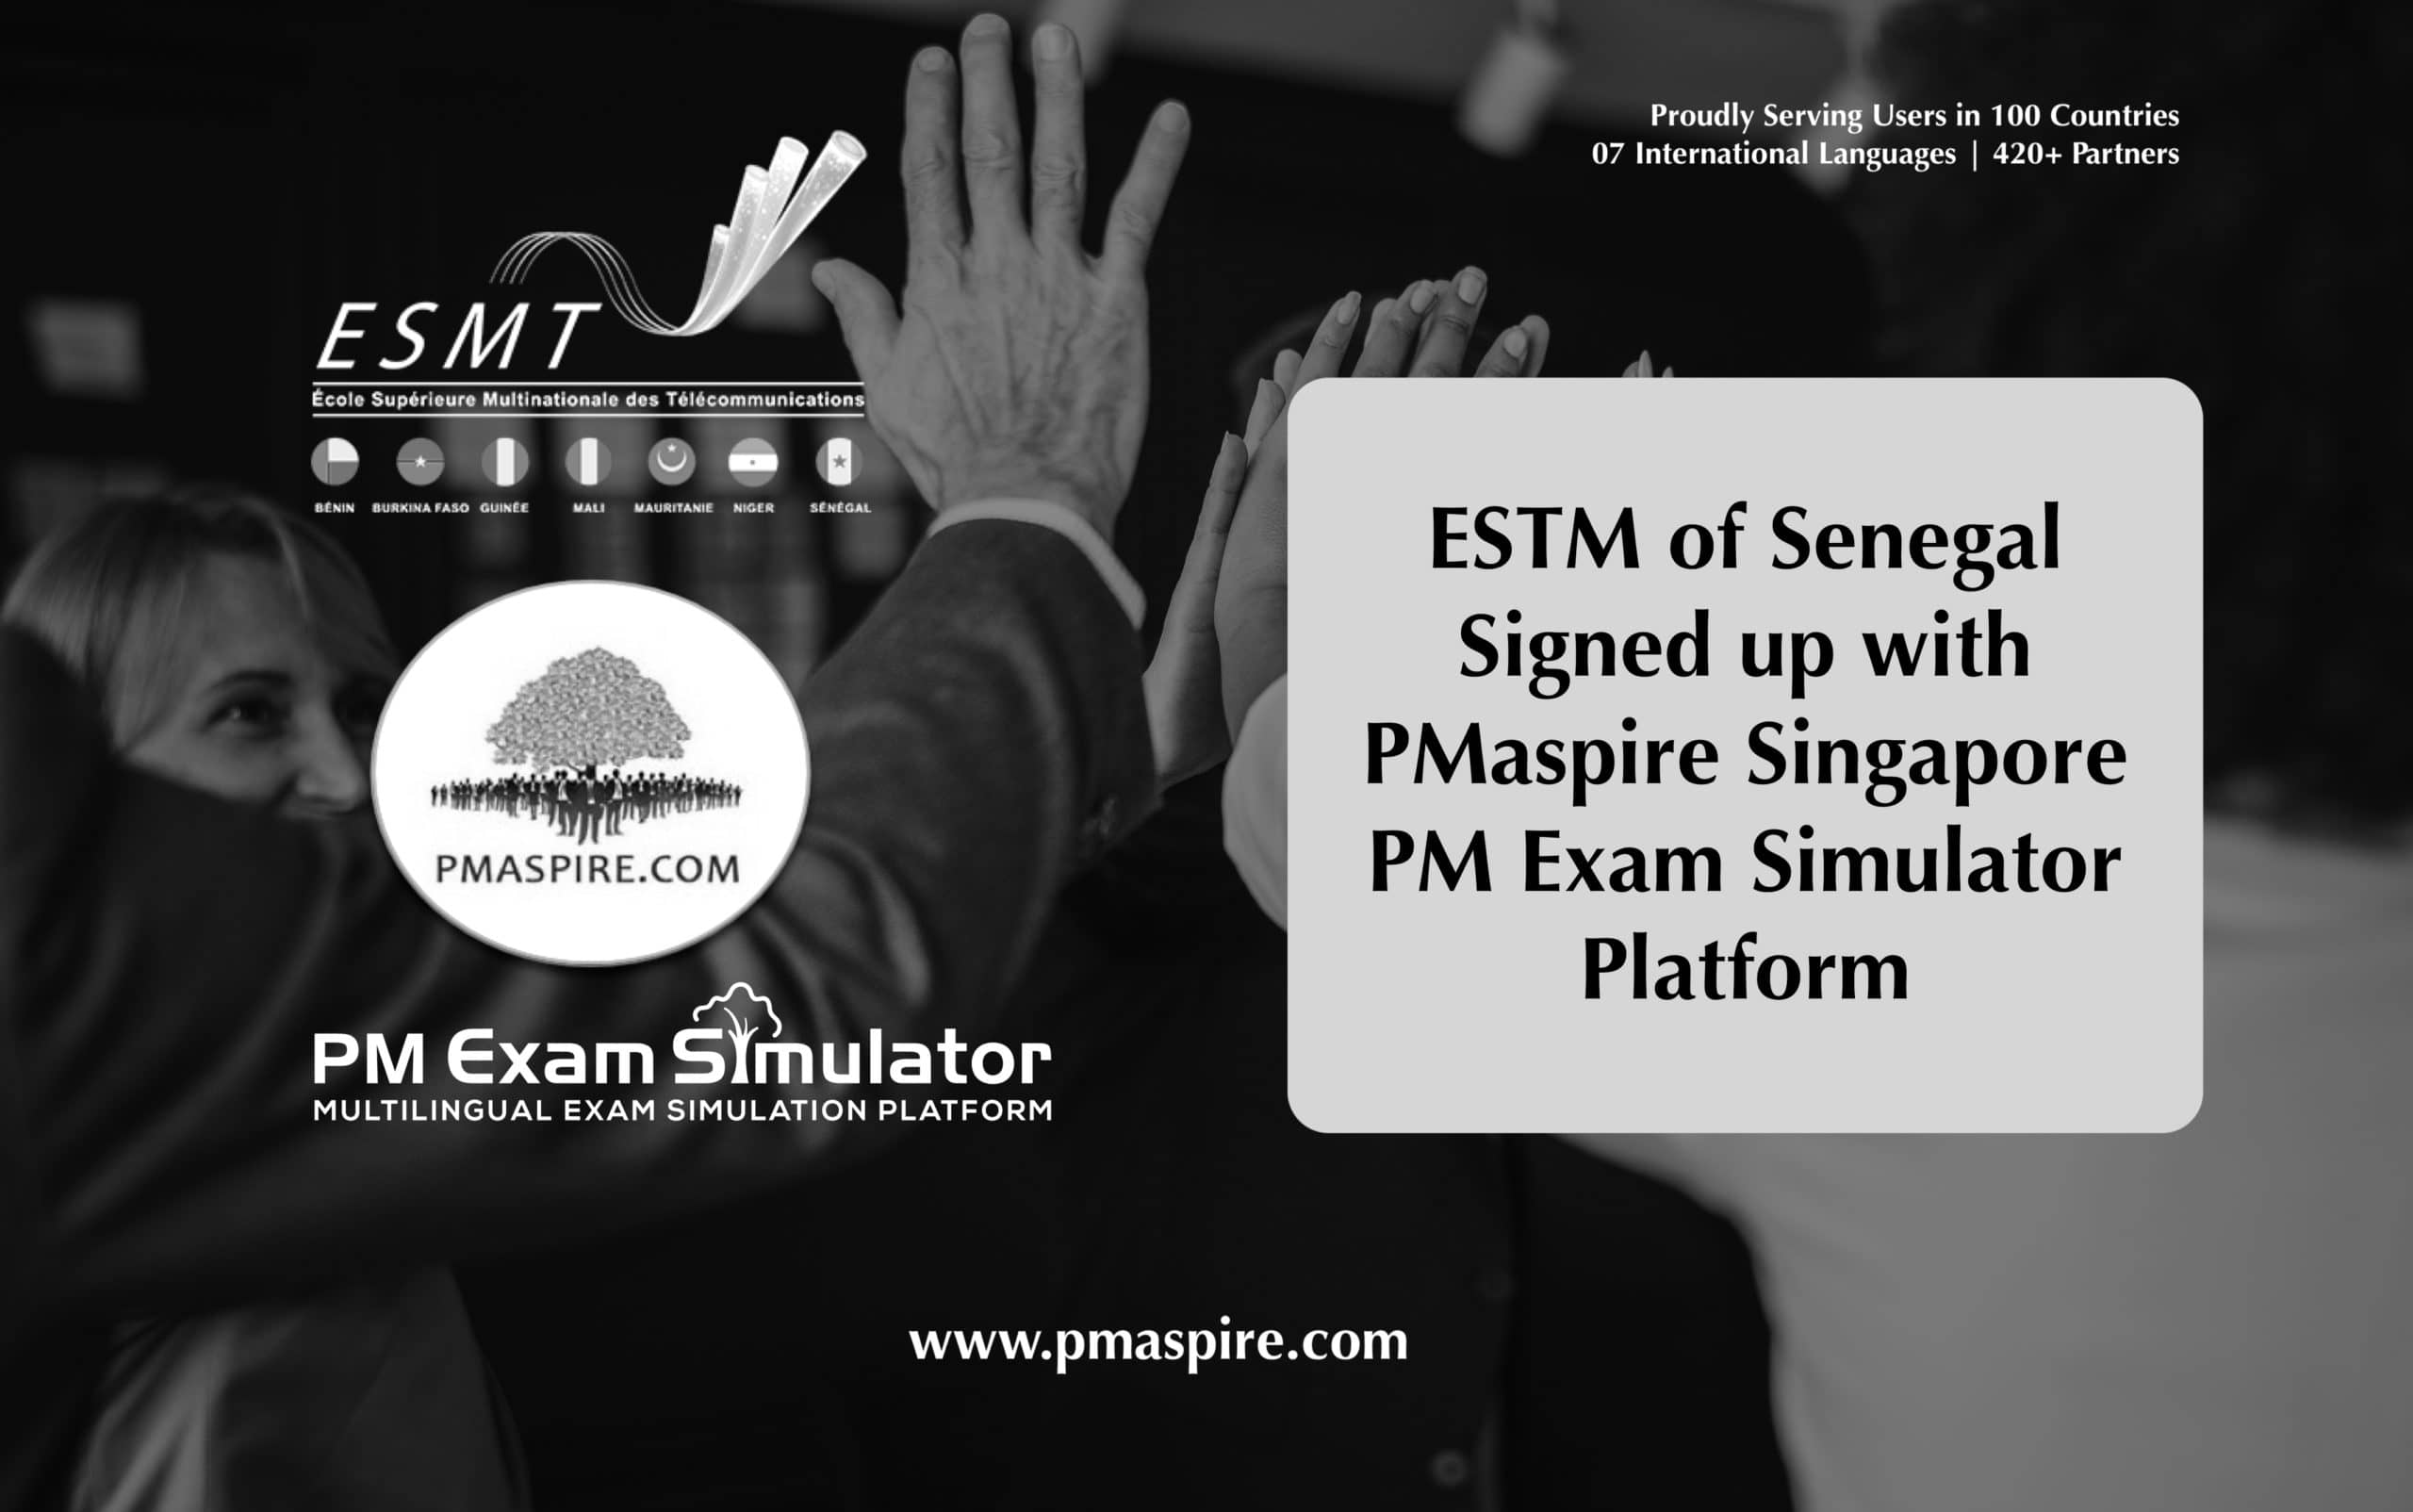 pmp exam simulator